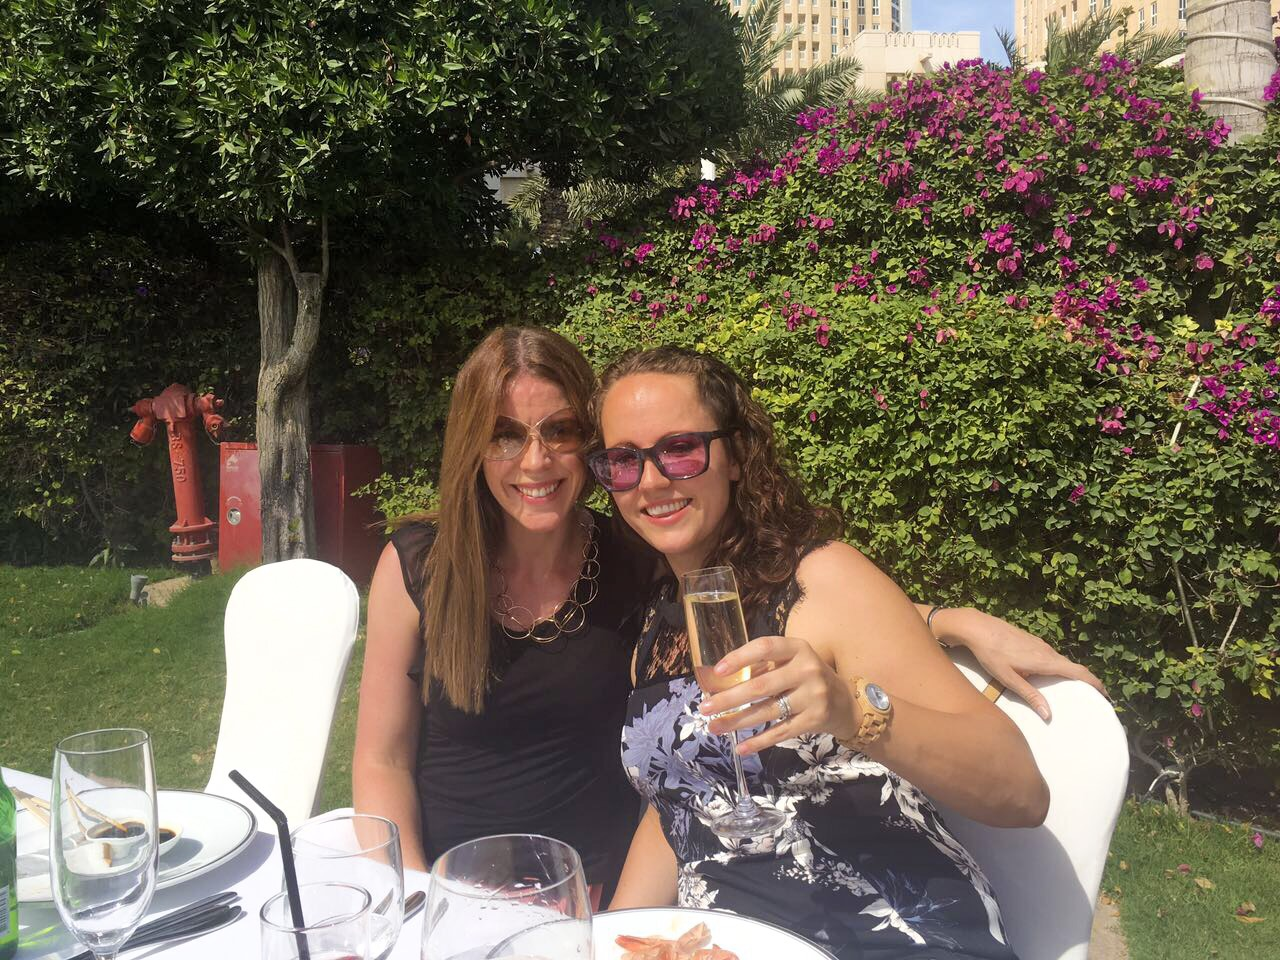 Me and my friend Laura at a brunch in Doha